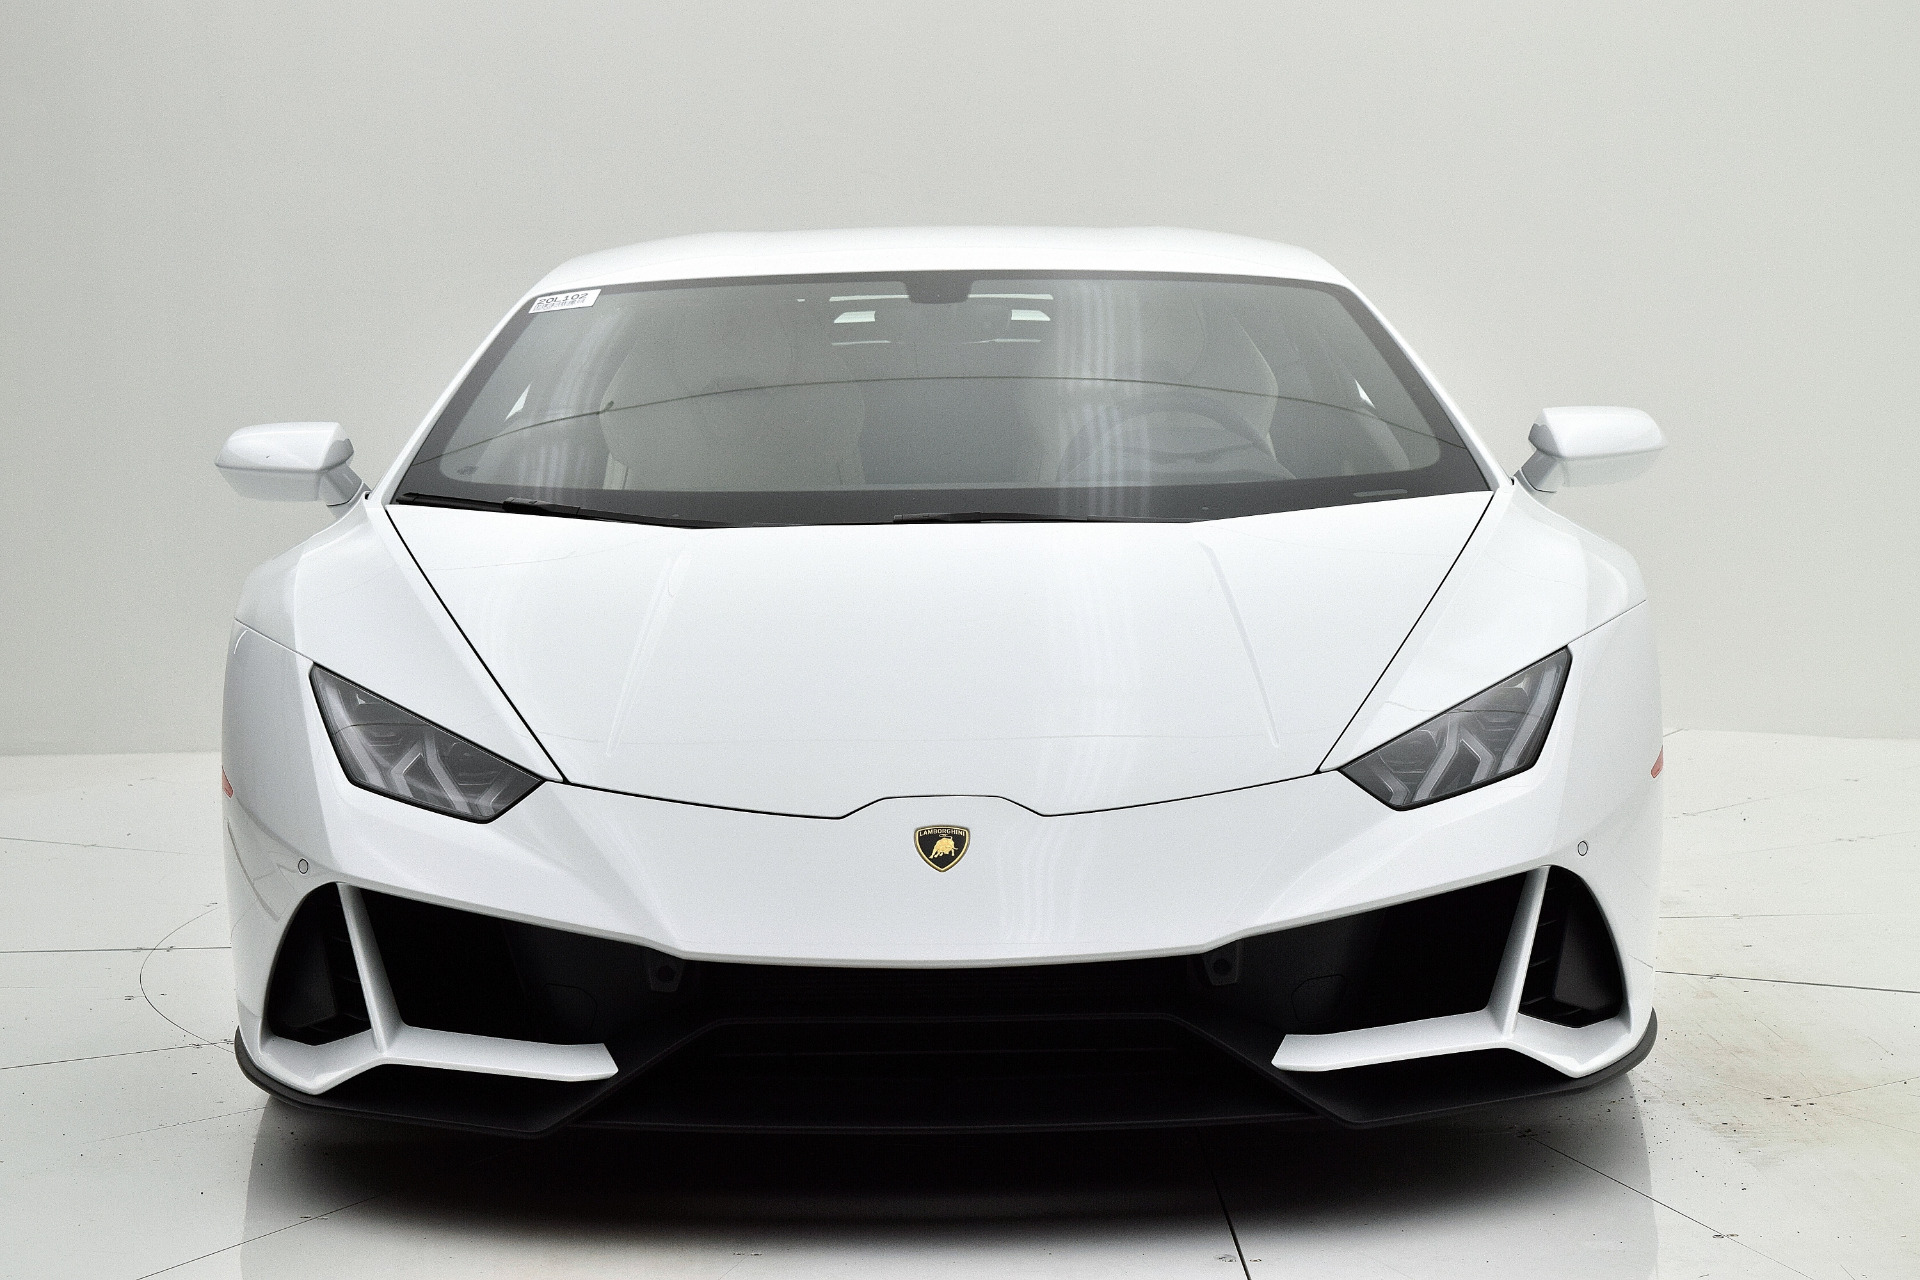 New 2020 Lamborghini Huracan Evo For Sale 292 419 F C